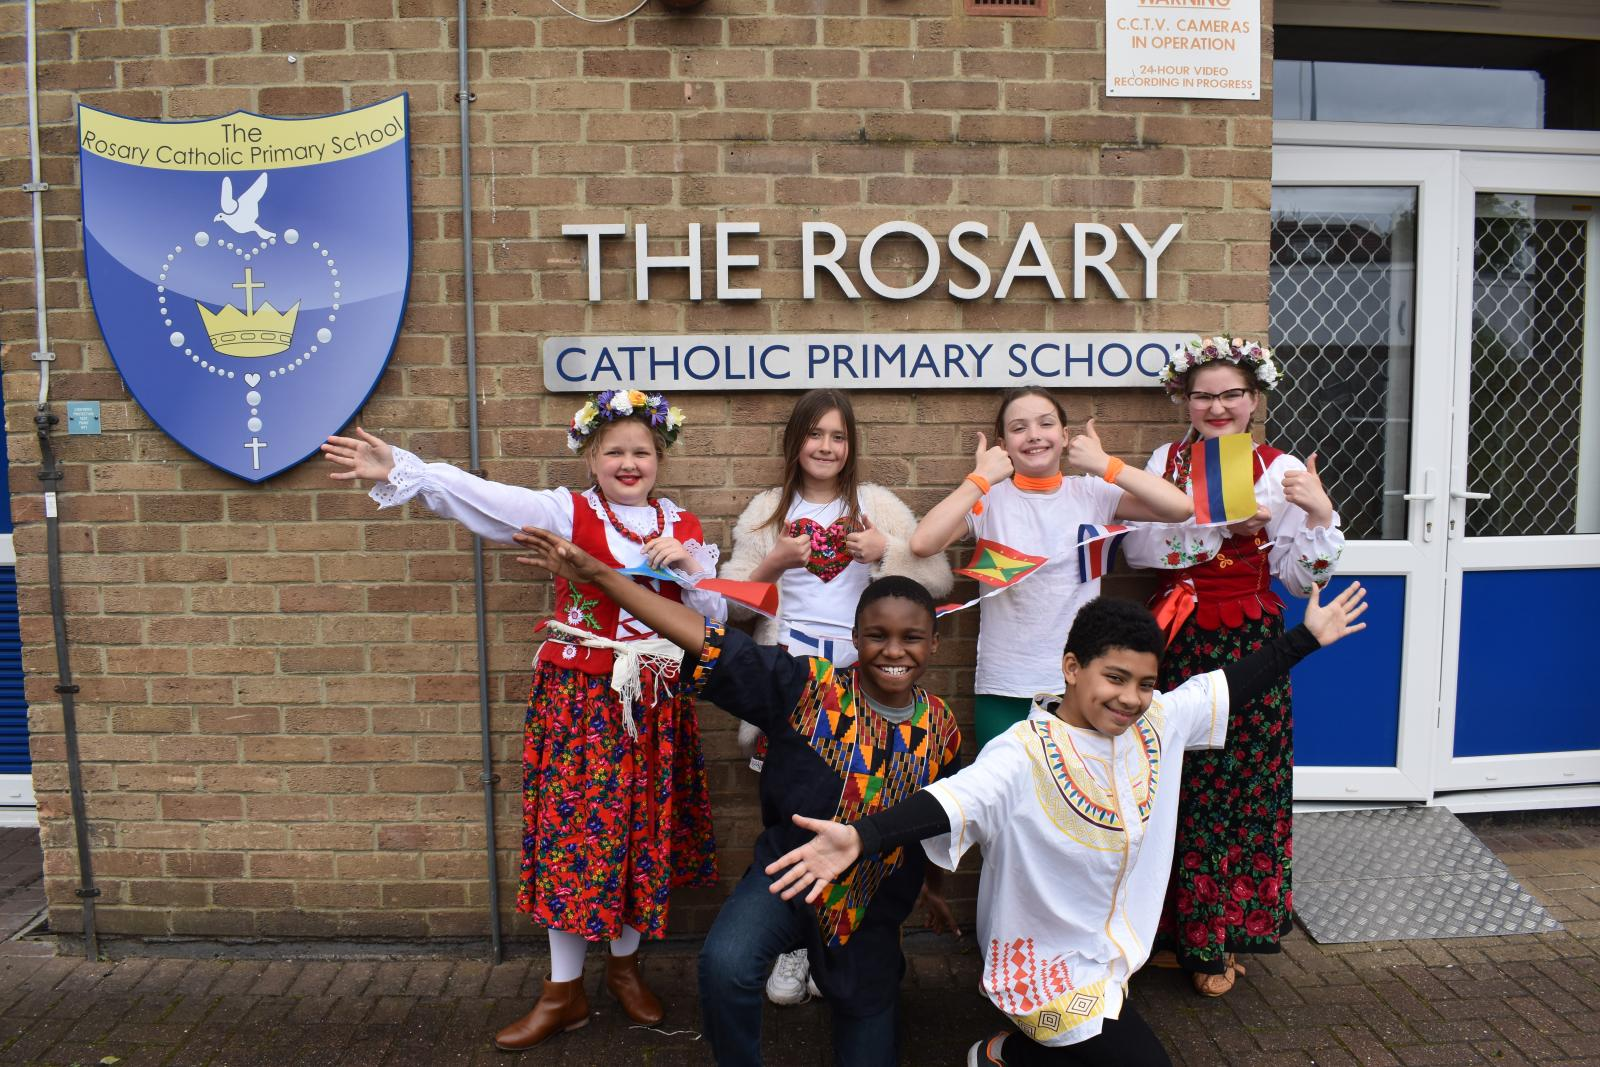 Heston pupils celebrate cultural diversity of school family - Diocese of Westminster